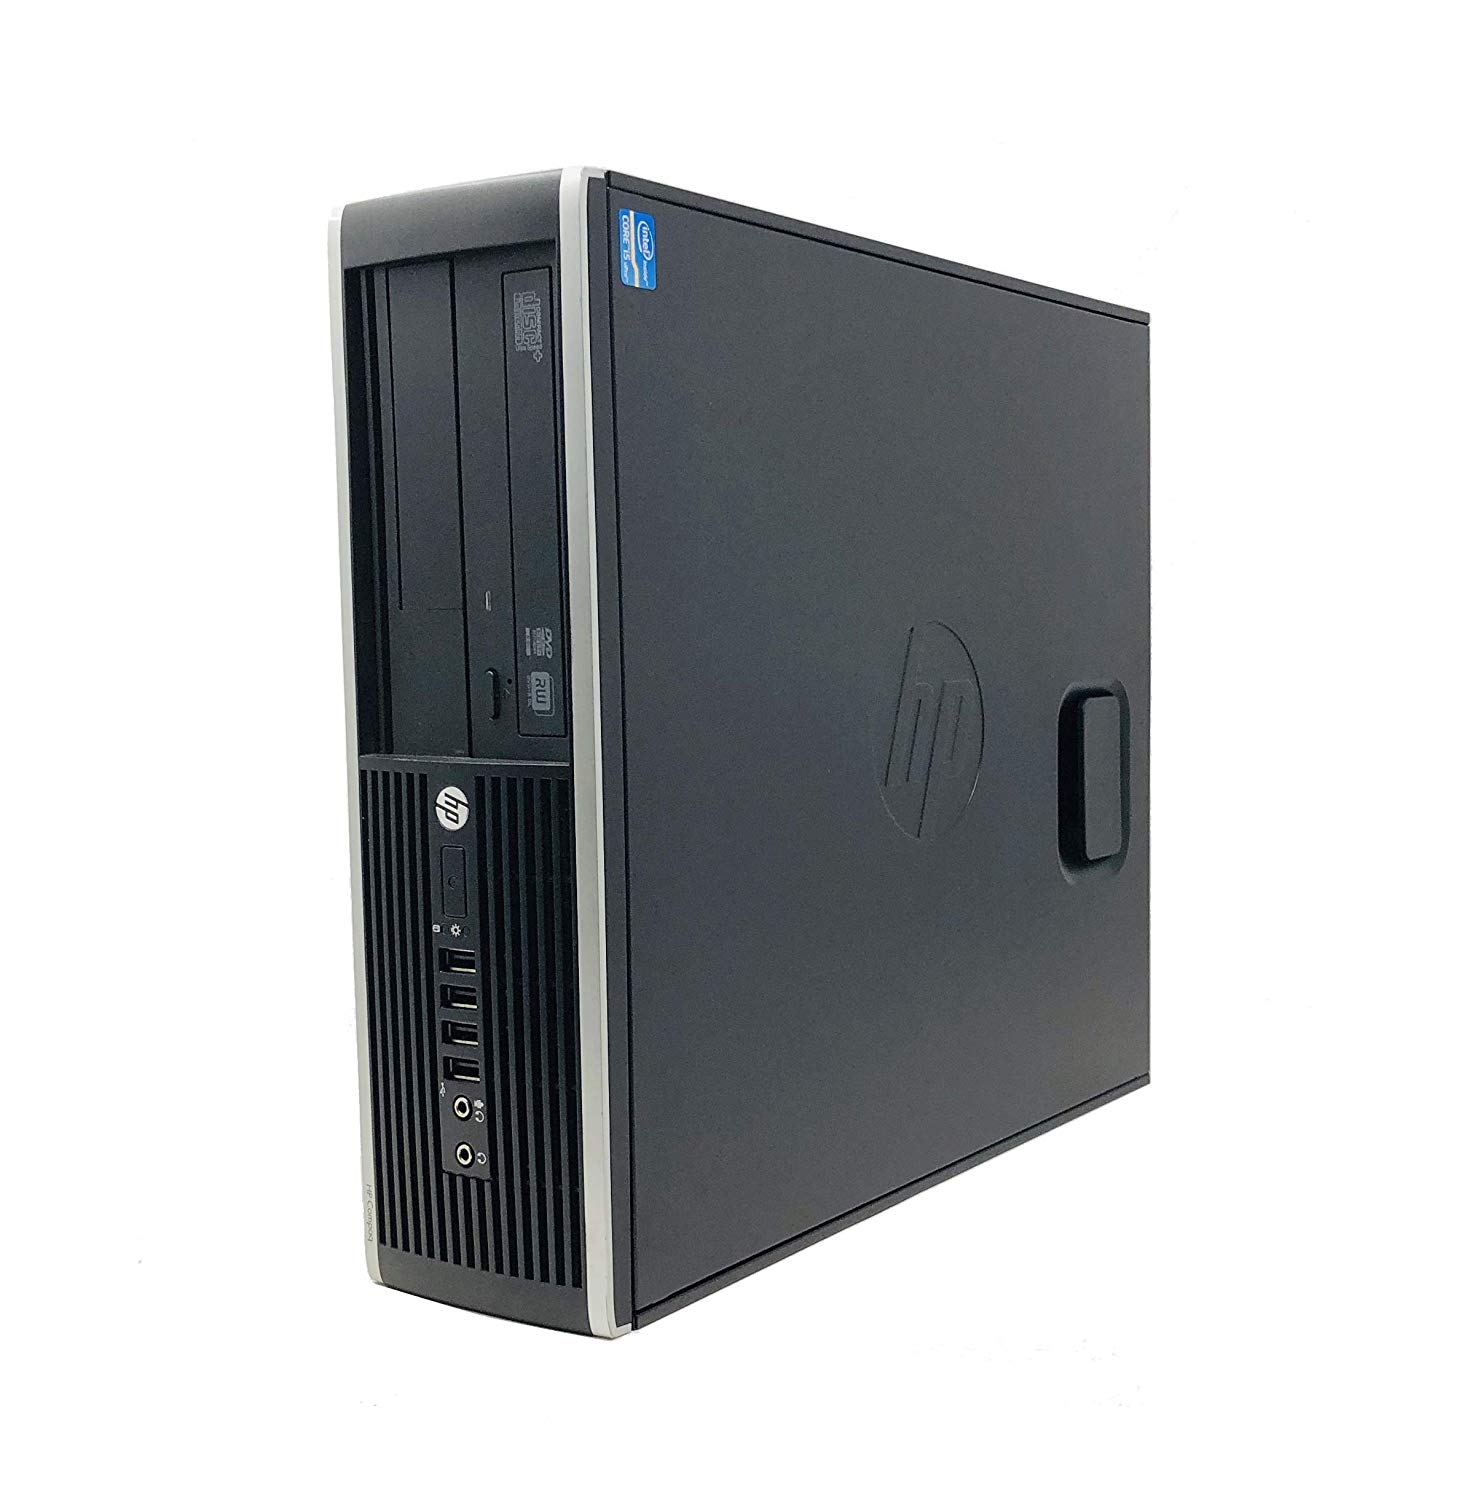 Hp Elite 8200 - Ordenador de sobremesa (<font><b>Intel</b></font> <font><b>i5</b></font>-<font><b>2400</b></font>,Lector, 8GB de RAM, Disco SSD de 960GB , Windows 7 PRO ) - Negro (Reacondicionado) image